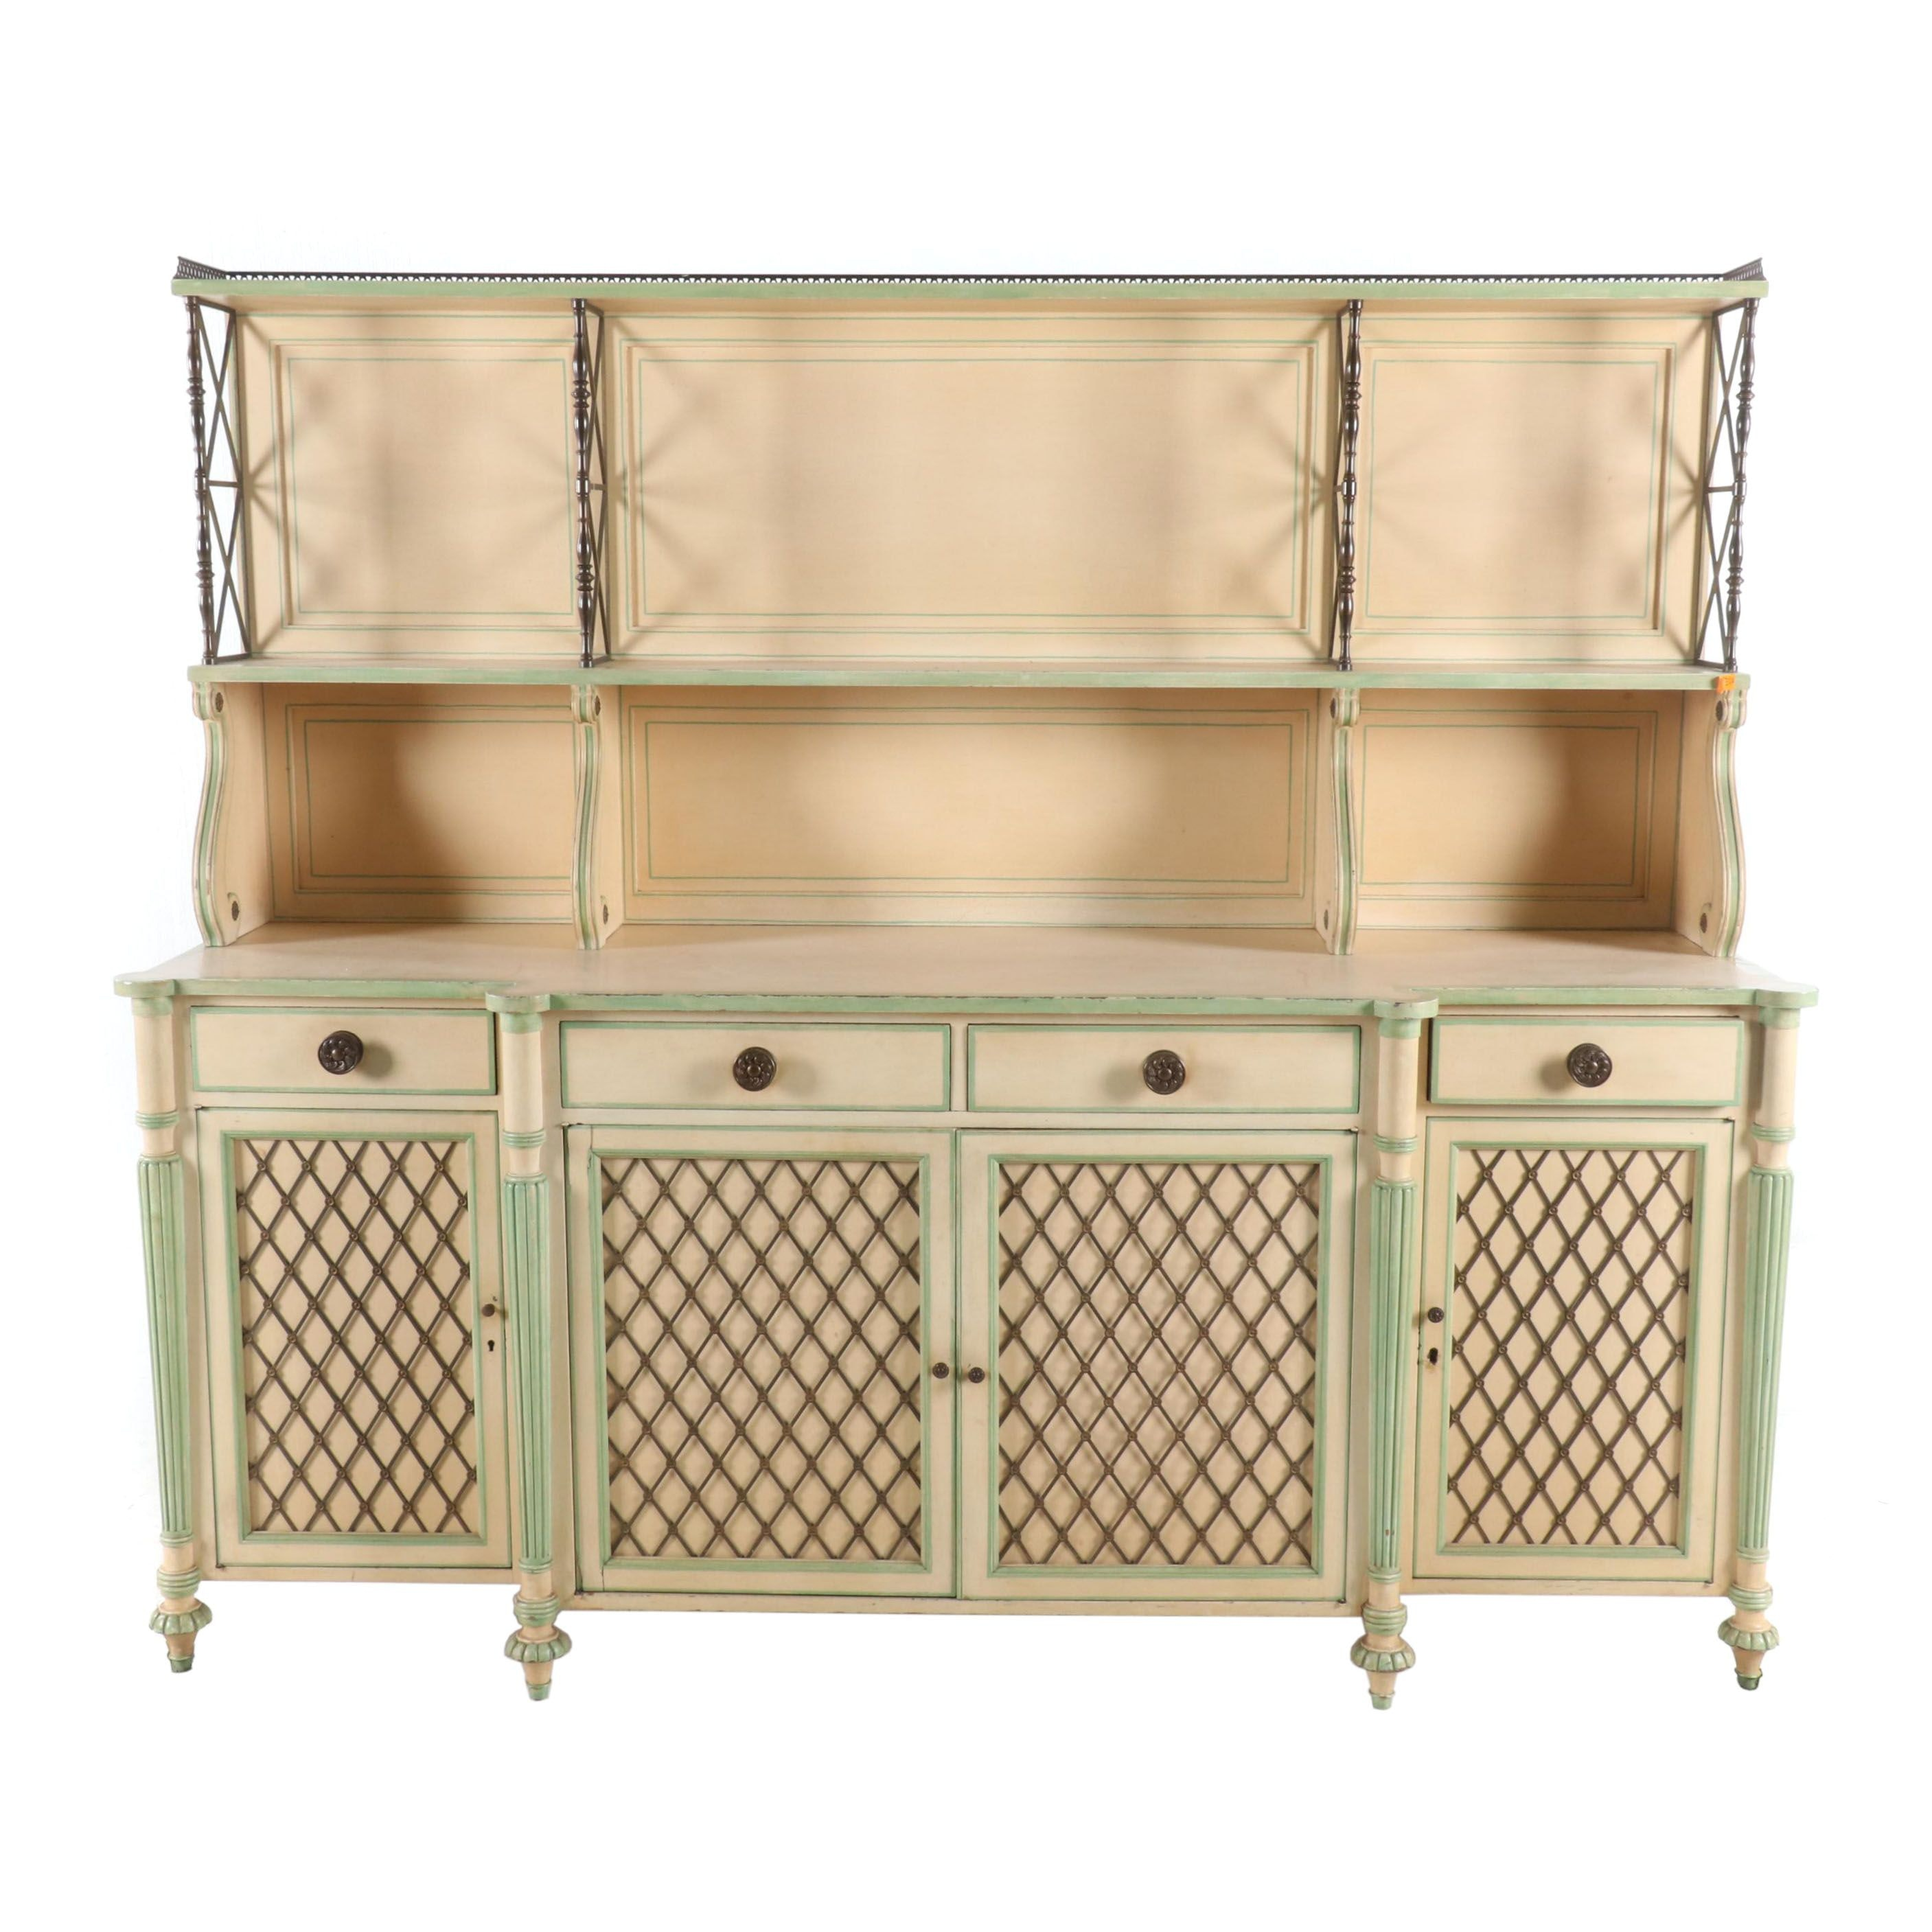 French Provincial Style Sideboard Buffet with Hutch